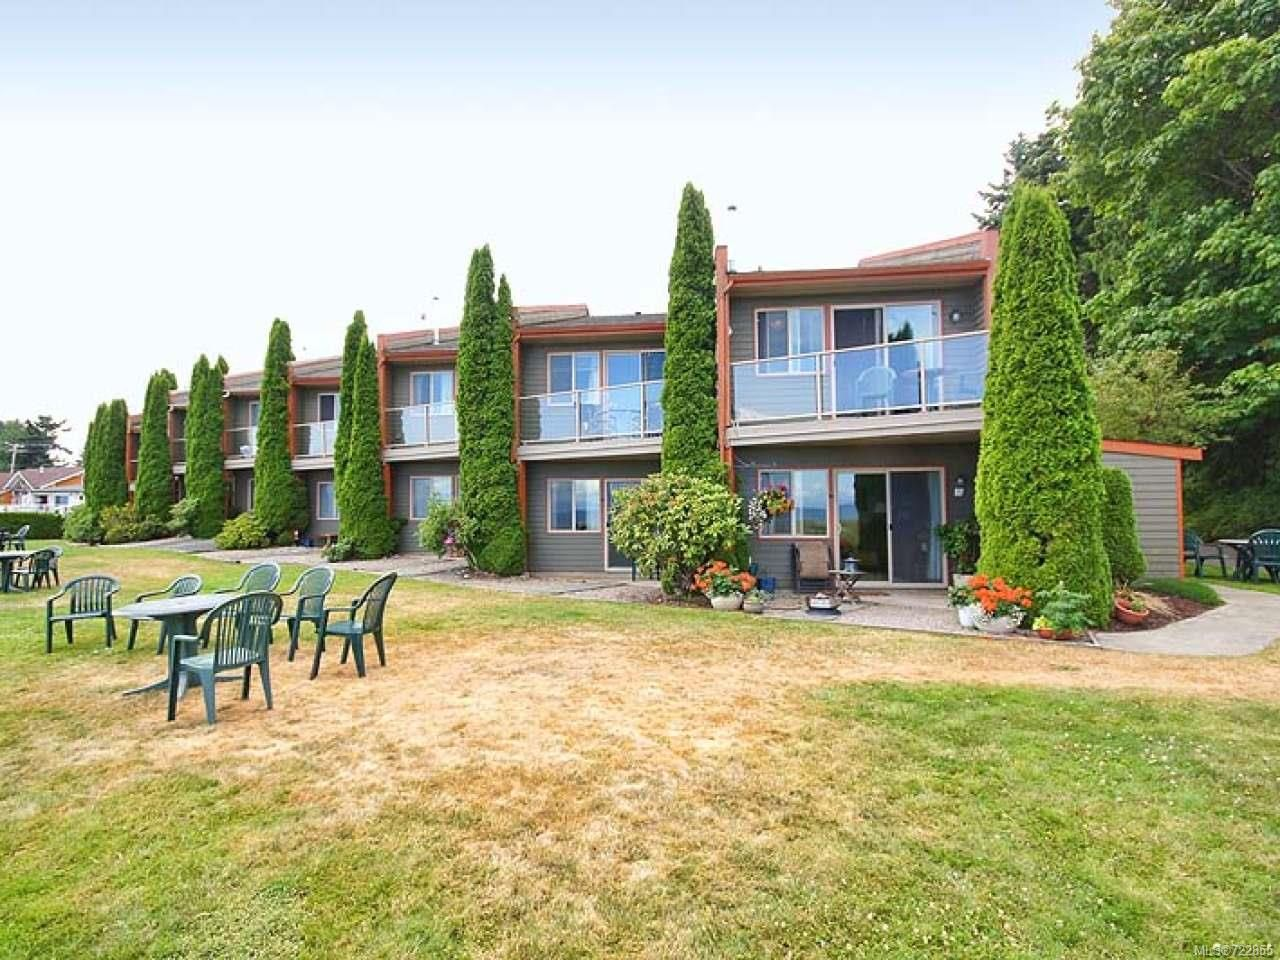 Main Photo: 220 3295 W ISLAND W Highway in QUALICUM BEACH: PQ Qualicum Beach Condo for sale (Parksville/Qualicum)  : MLS®# 722855